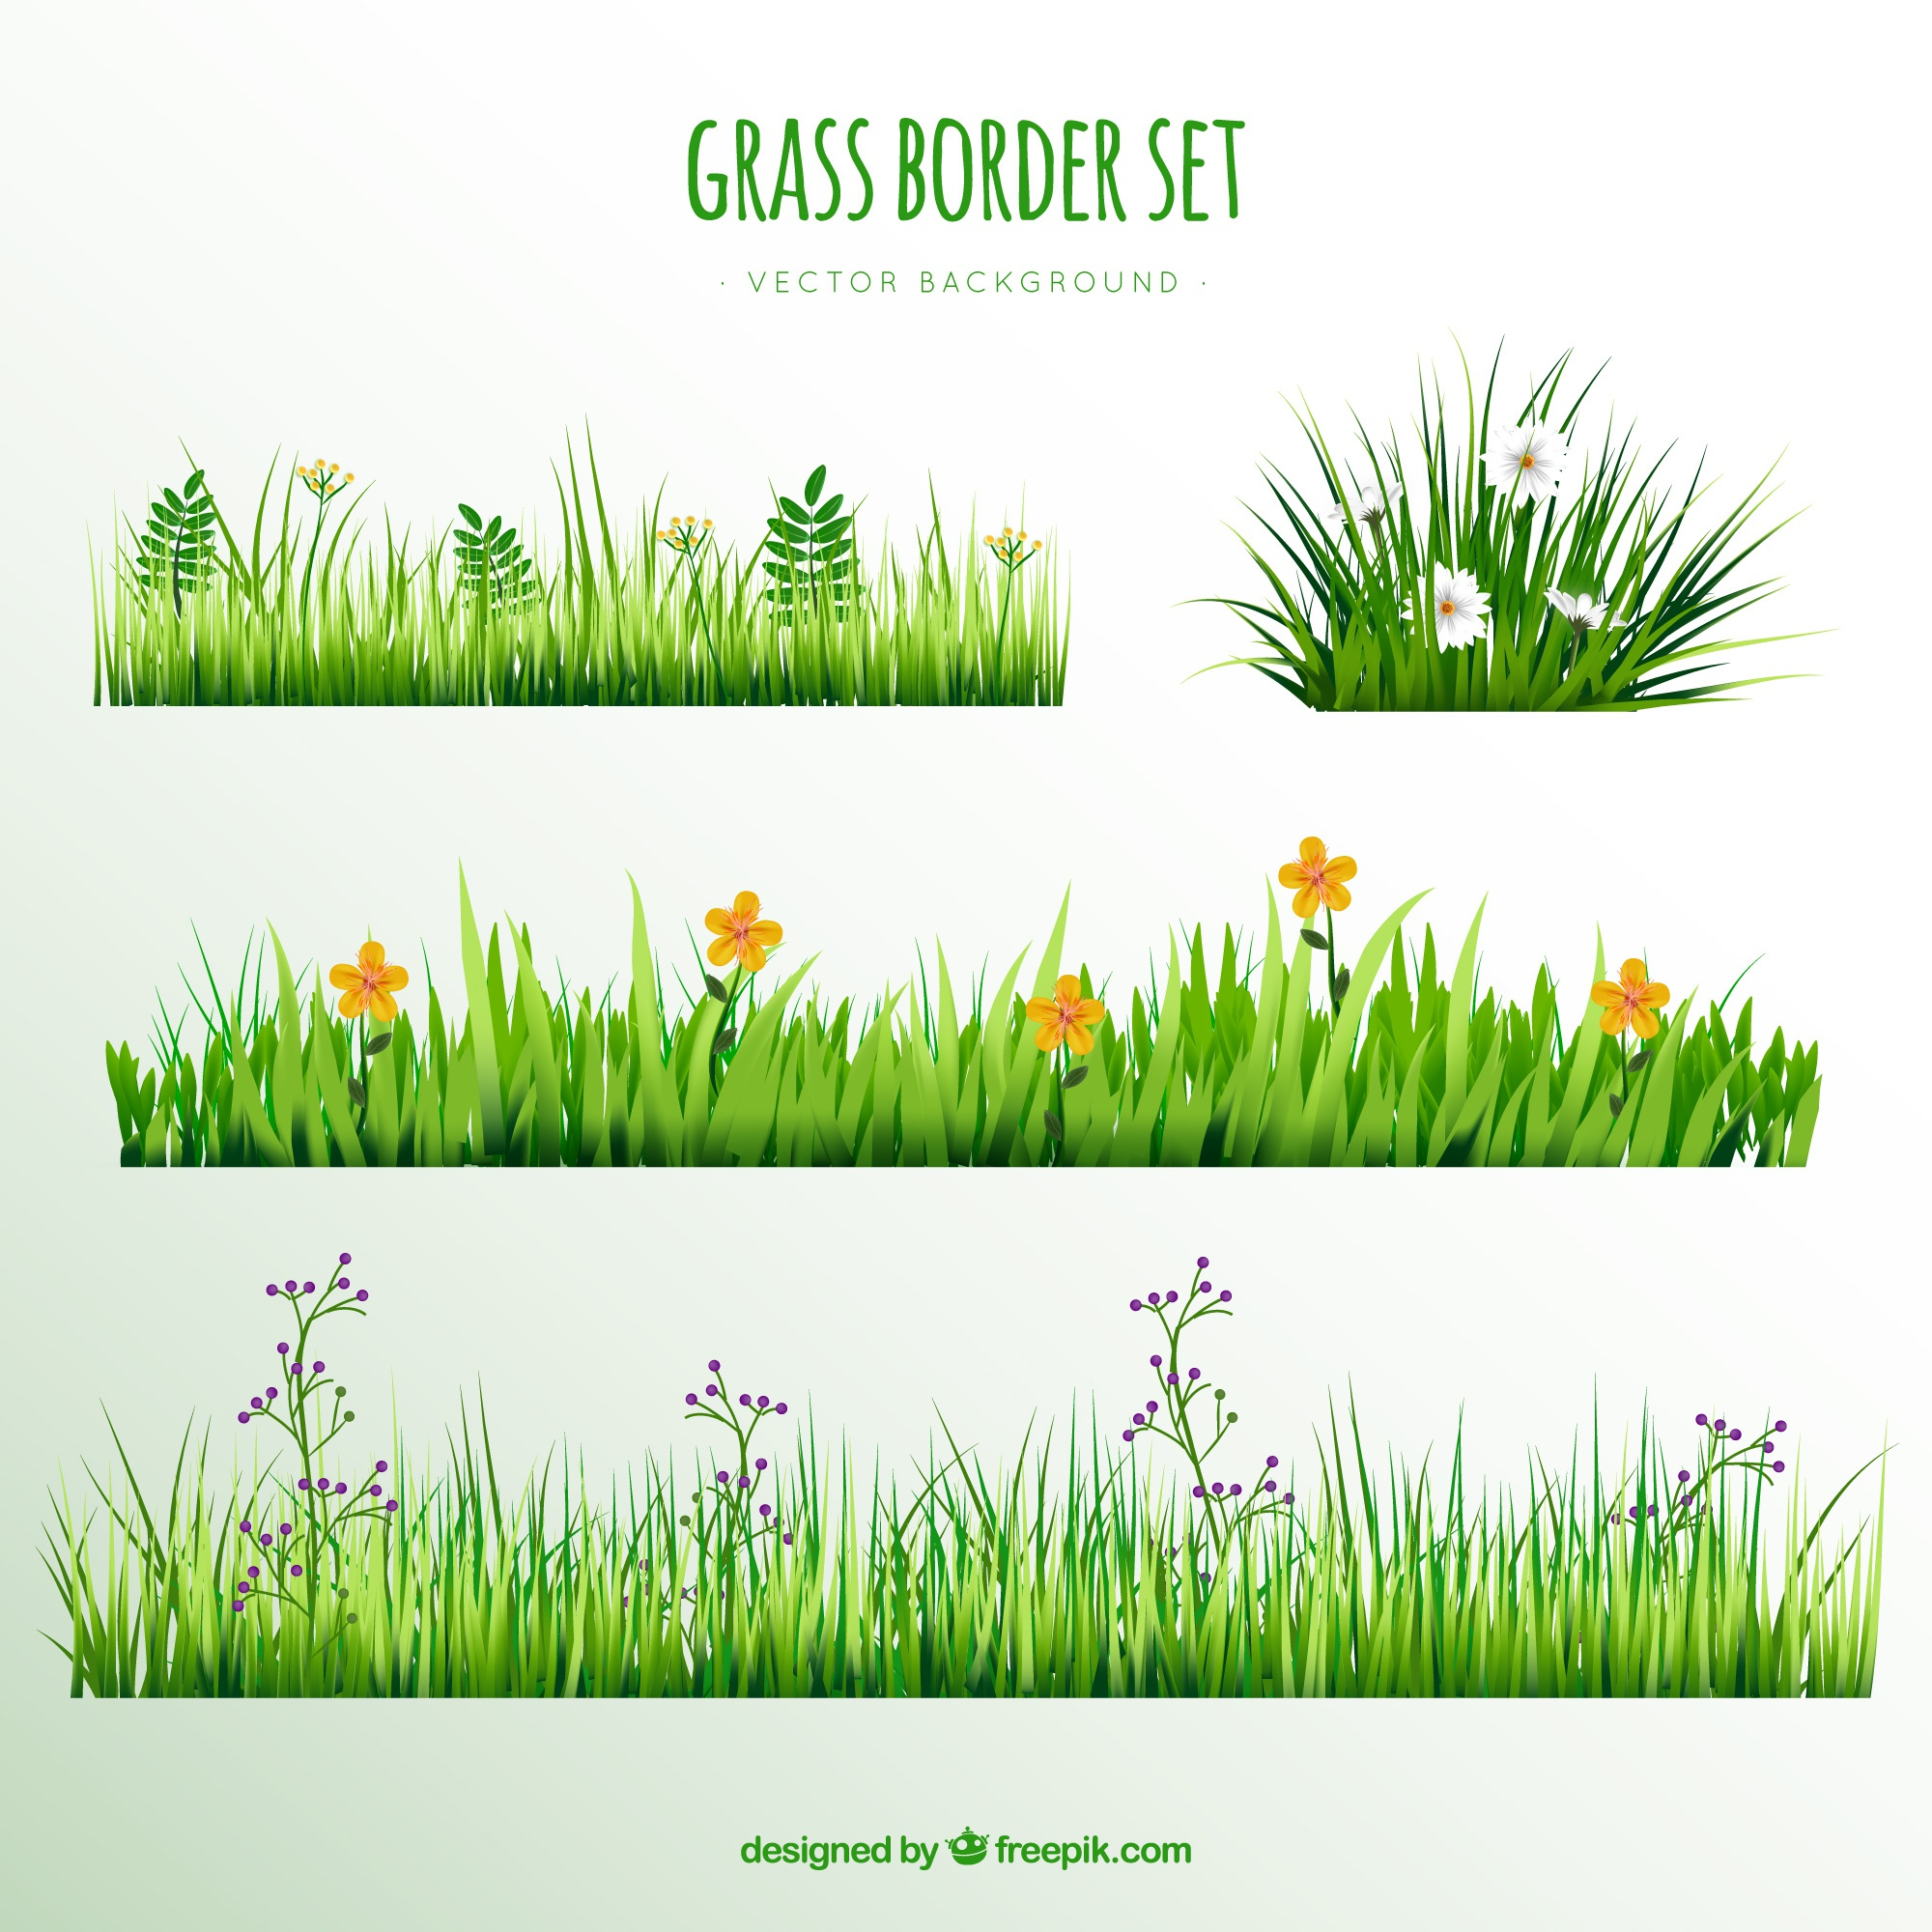 Decorative grass borders with pretty flowers